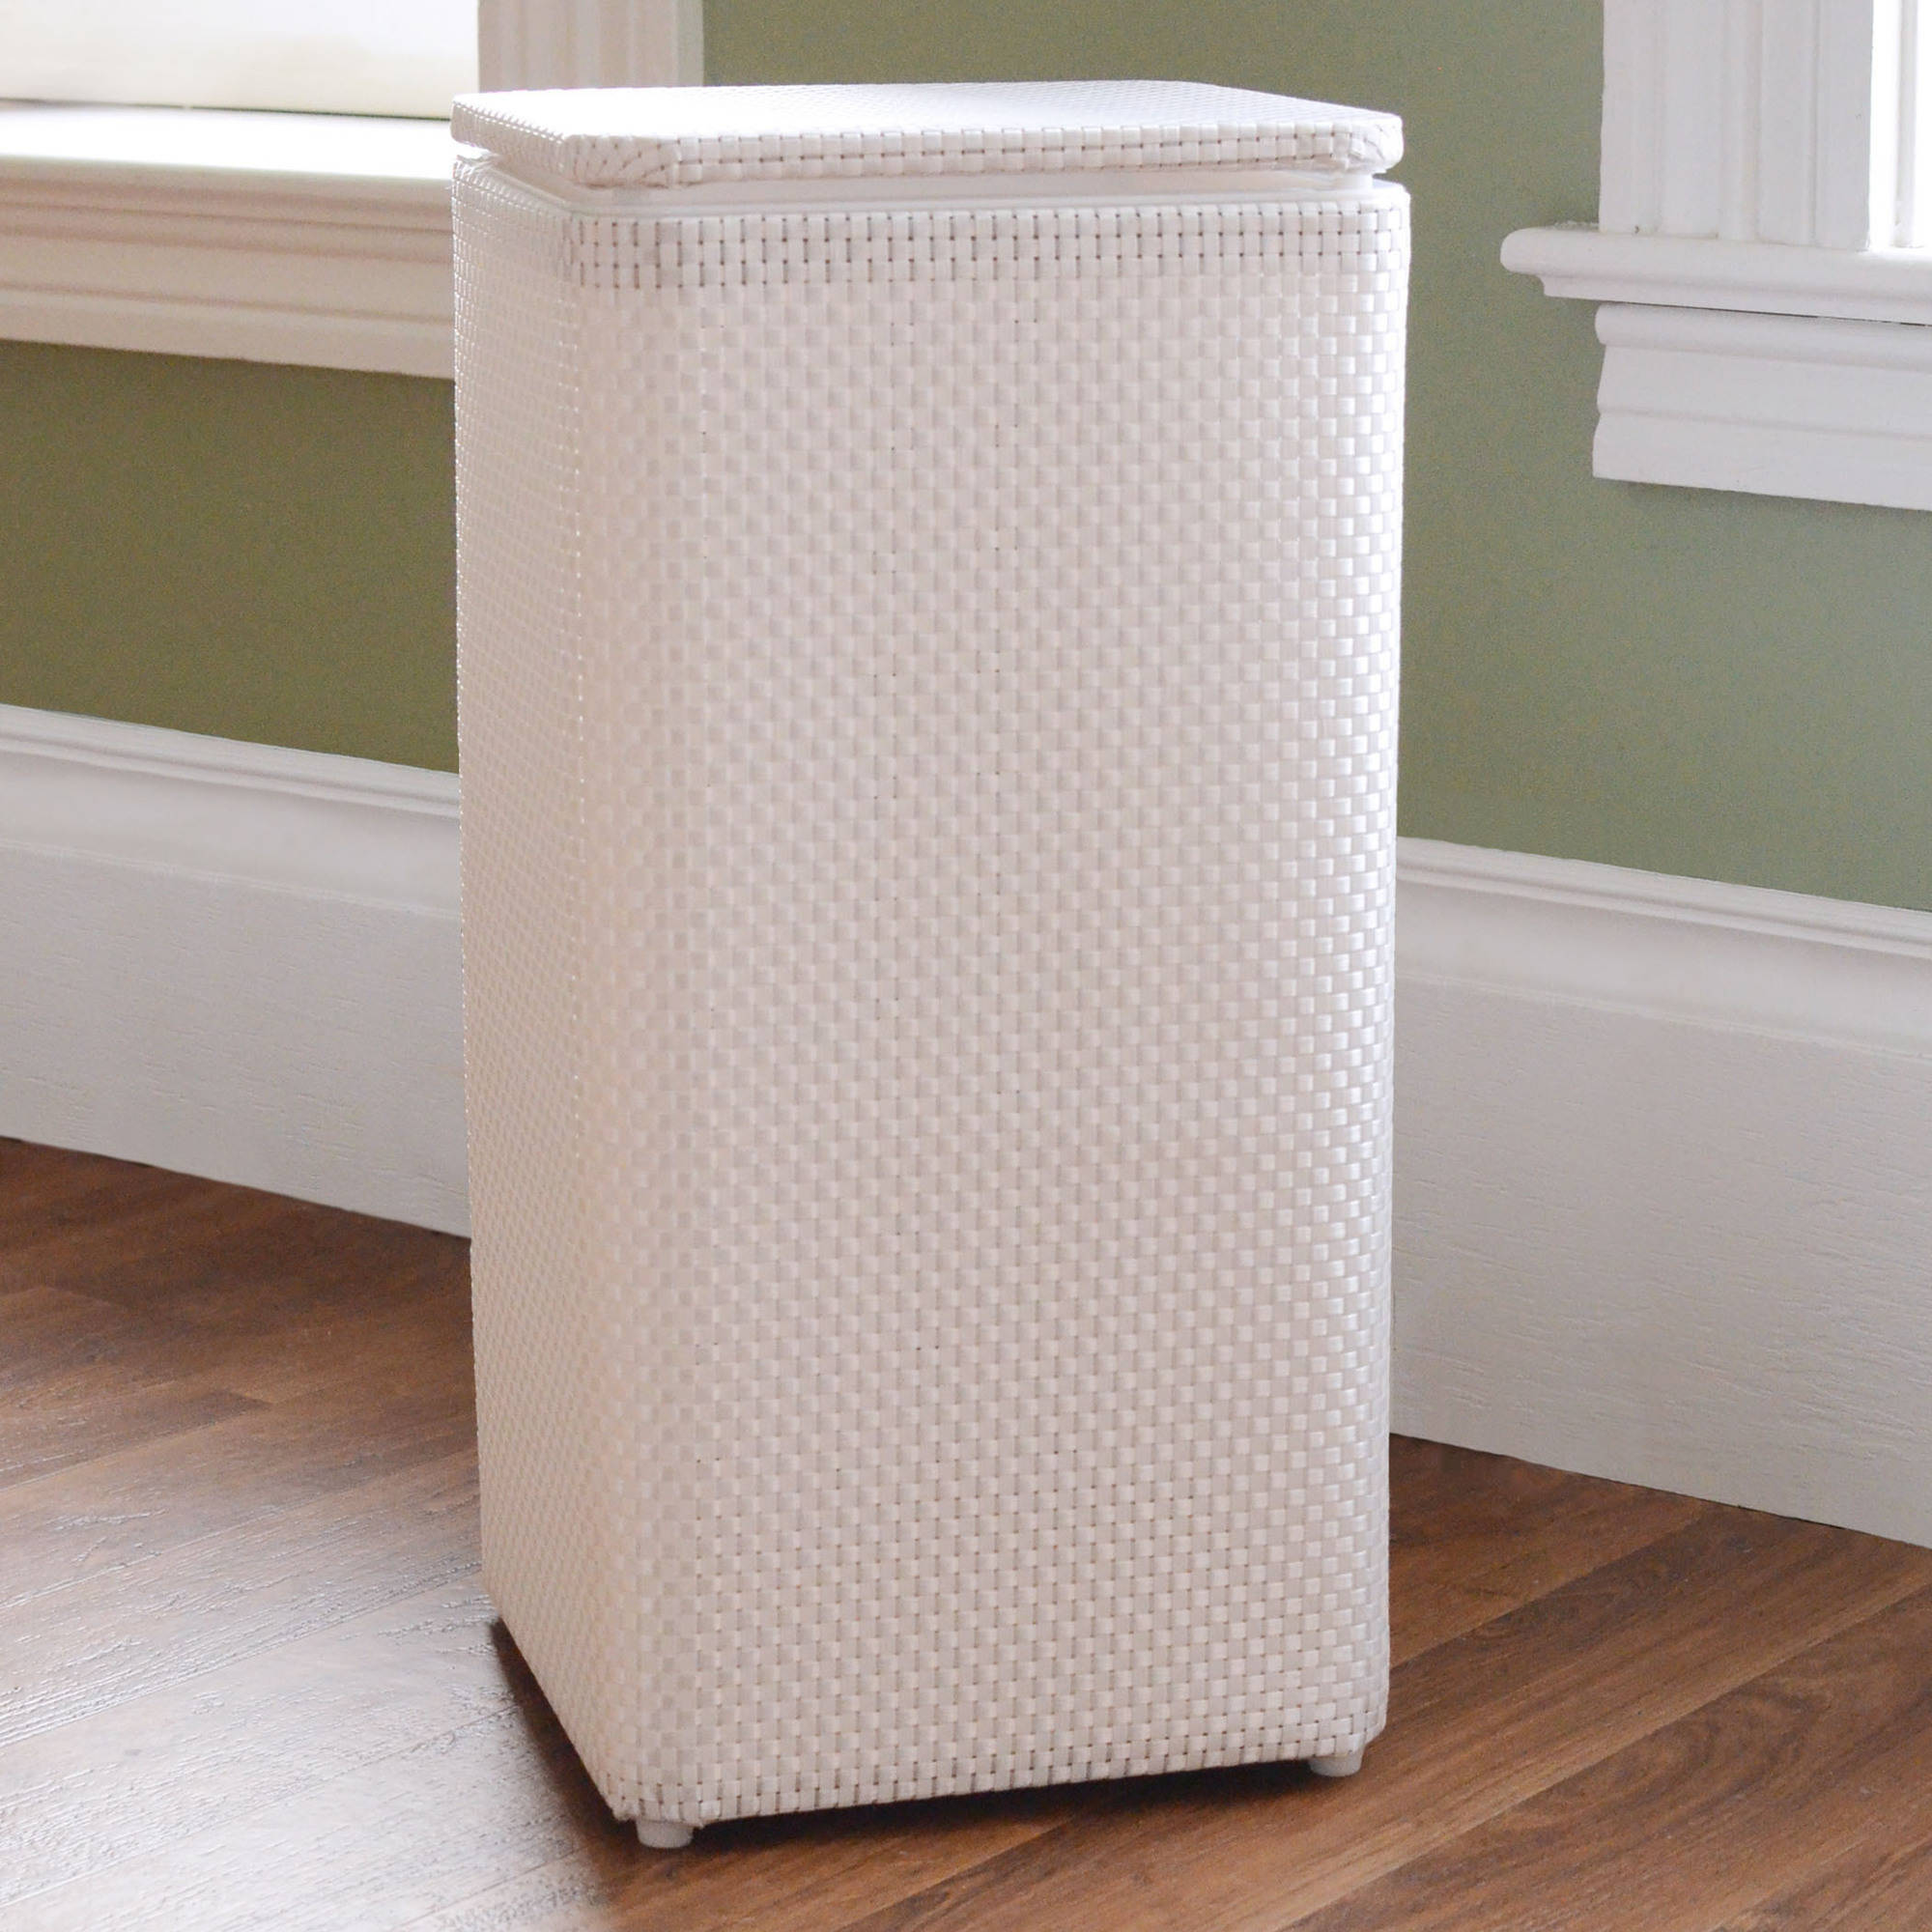 1530 LaMont Home Apartment Hamper by Lamont Home